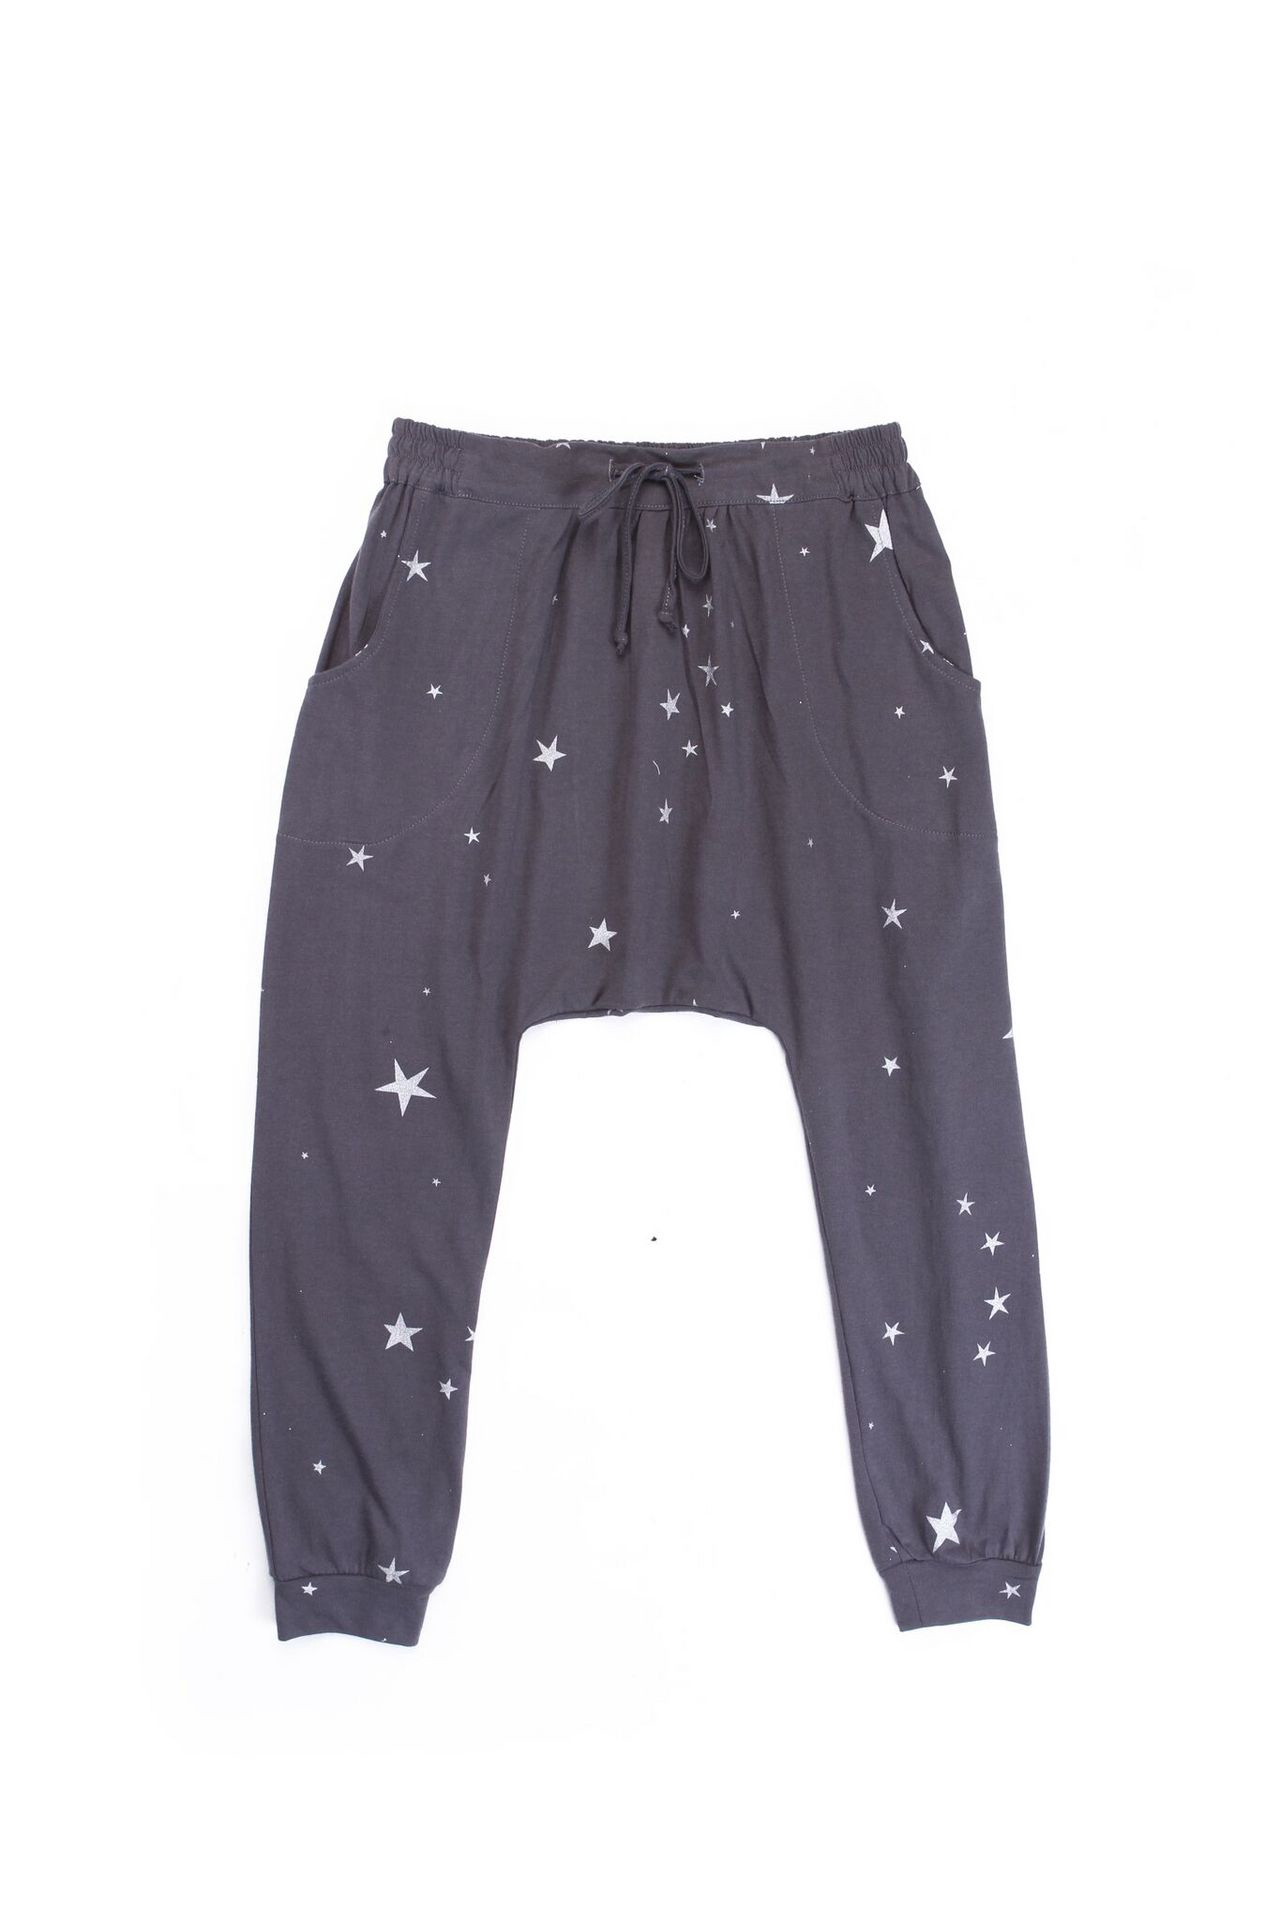 Alex and Ant Star Drop Pant Charcoal